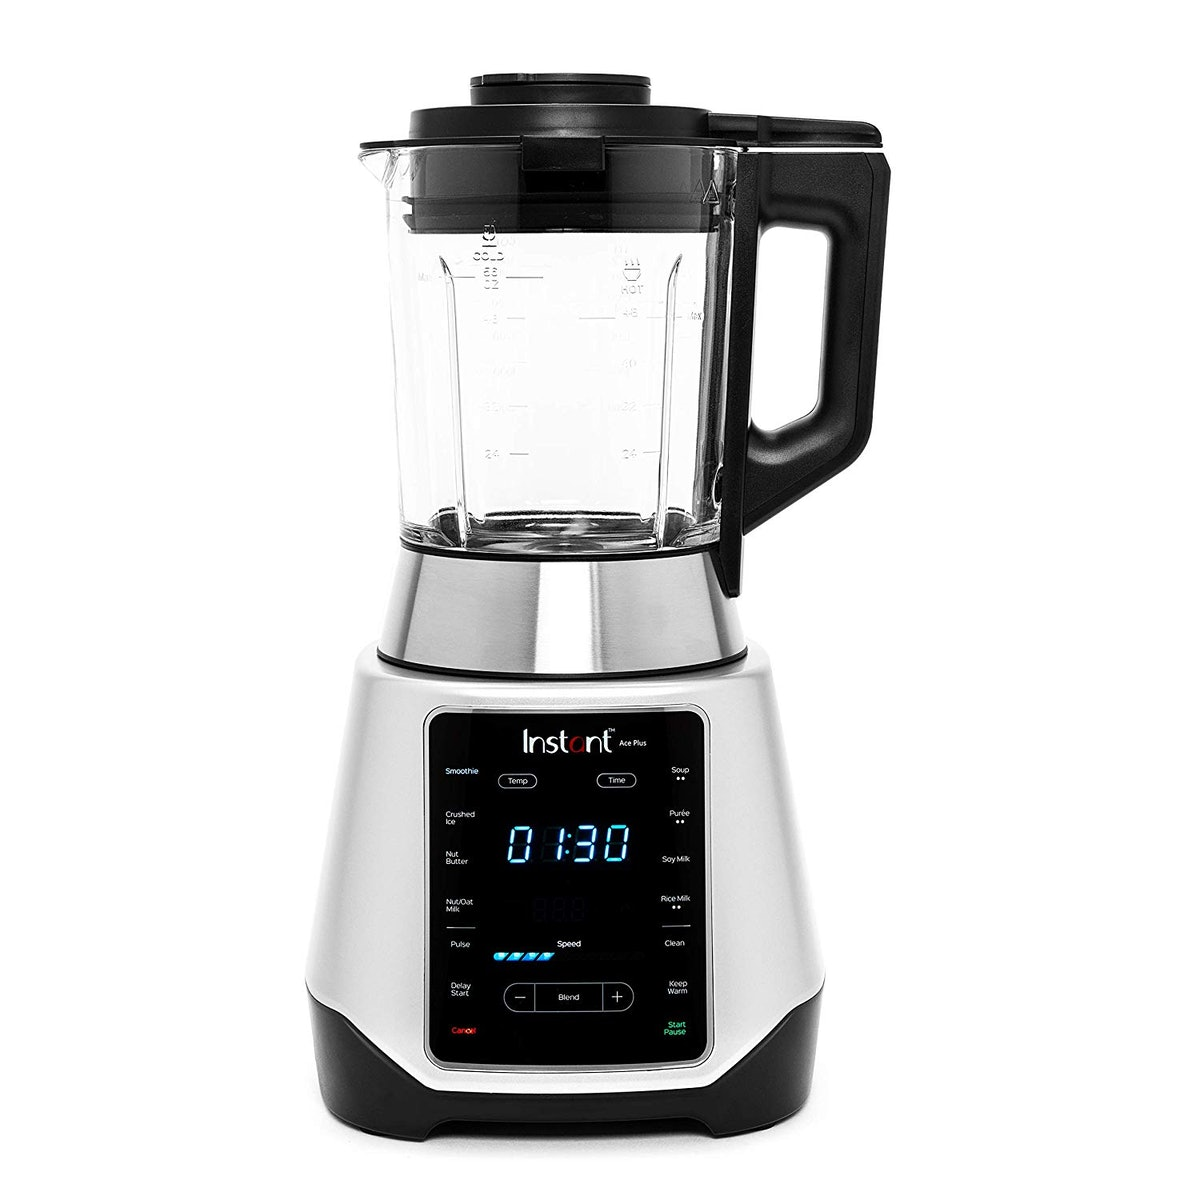 Instant Ace Plus Cooking & Beverage Blender includes Professional Quality Glass Pitcher with Conceal...